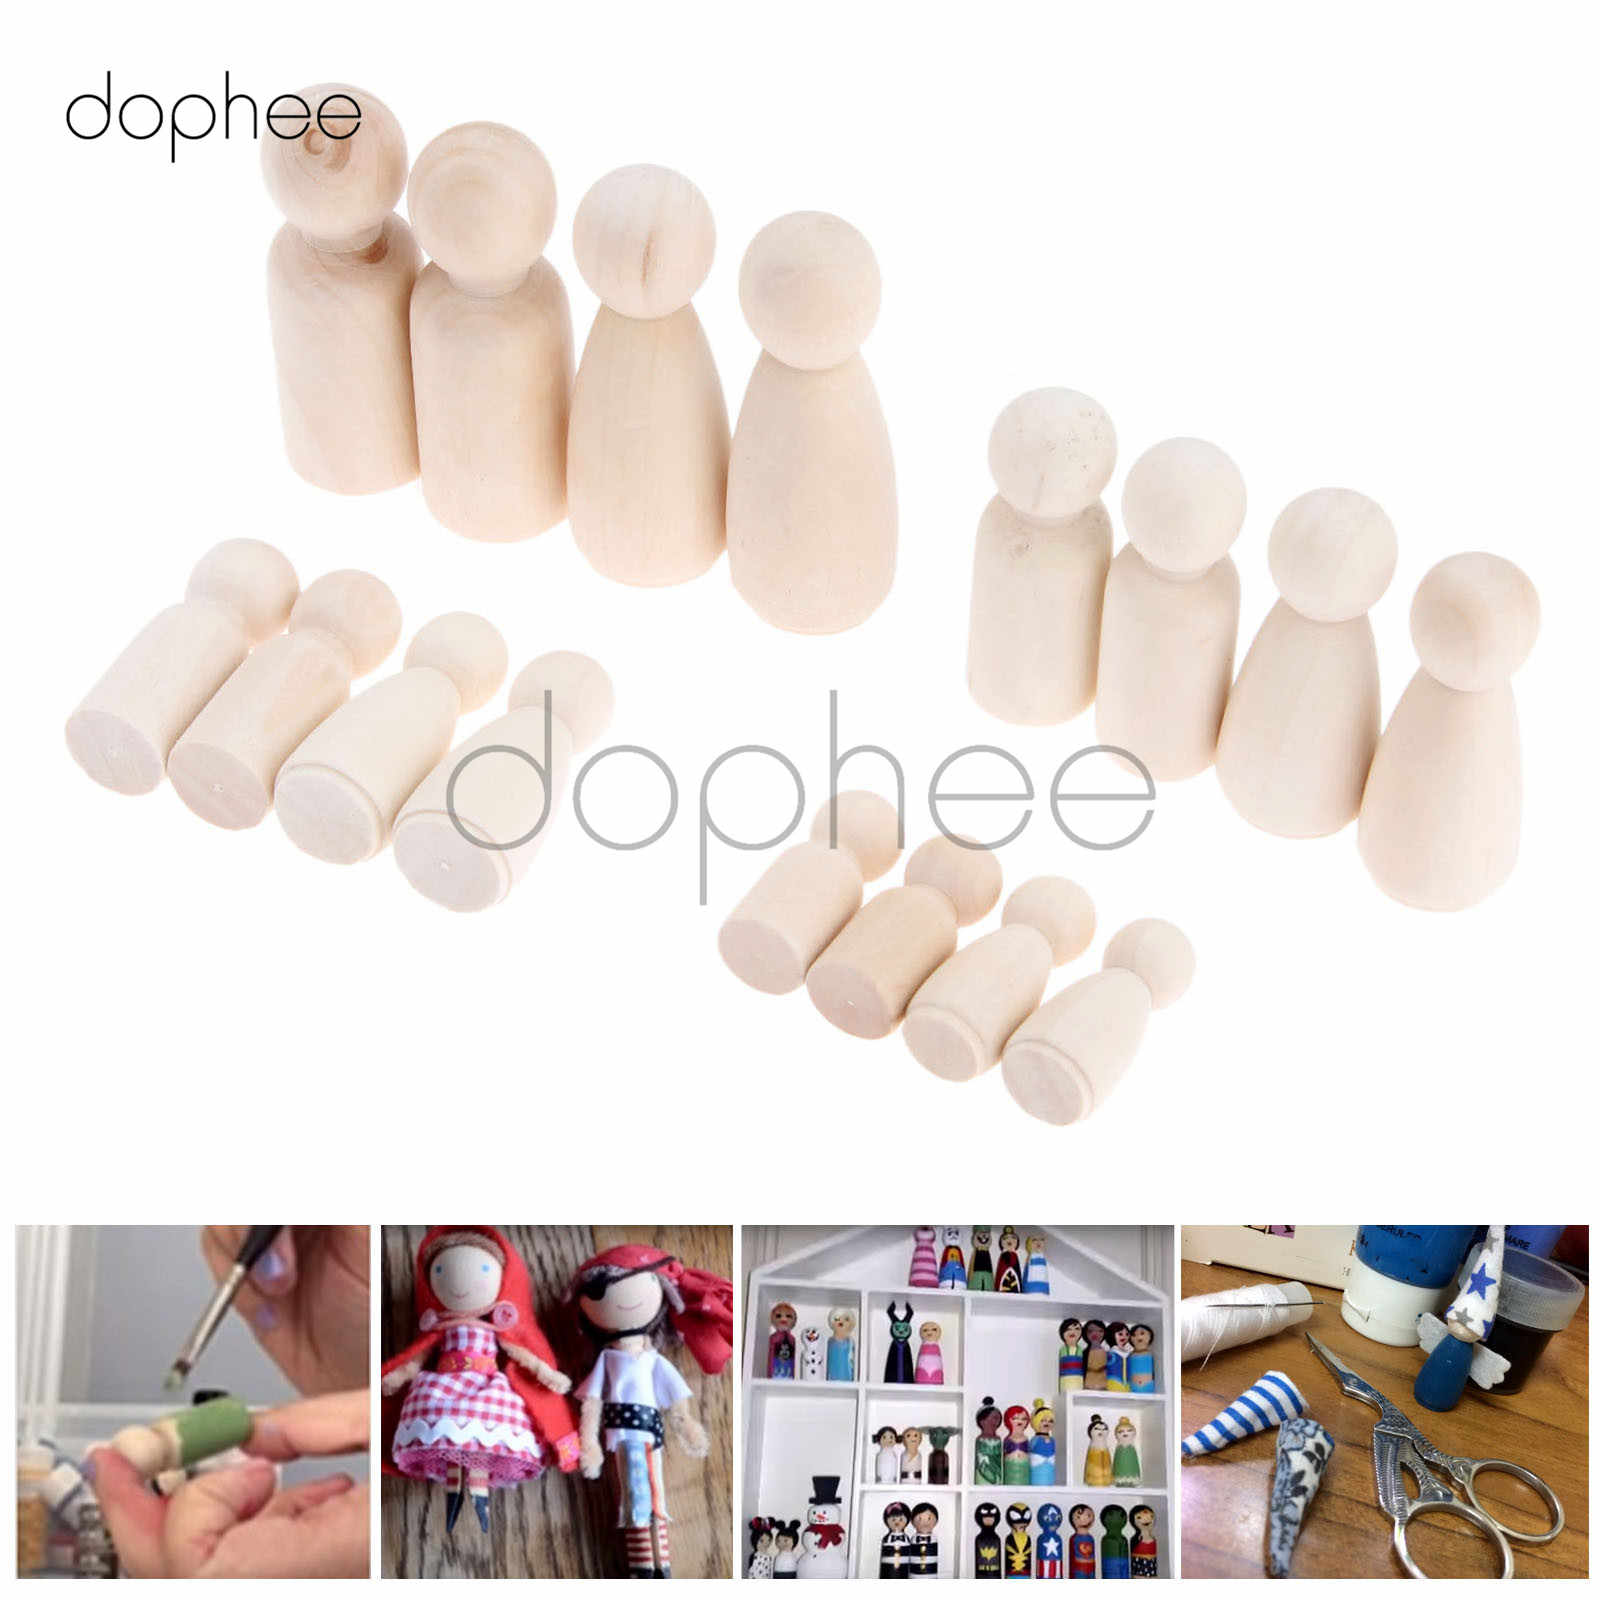 dophee 16pcs Mixed 35/43/55/65mm Wooden Peg Dolls Unpainted Figures Hard Wood Dolls Kid's Printed Baby Souvenirs DIY Crafts